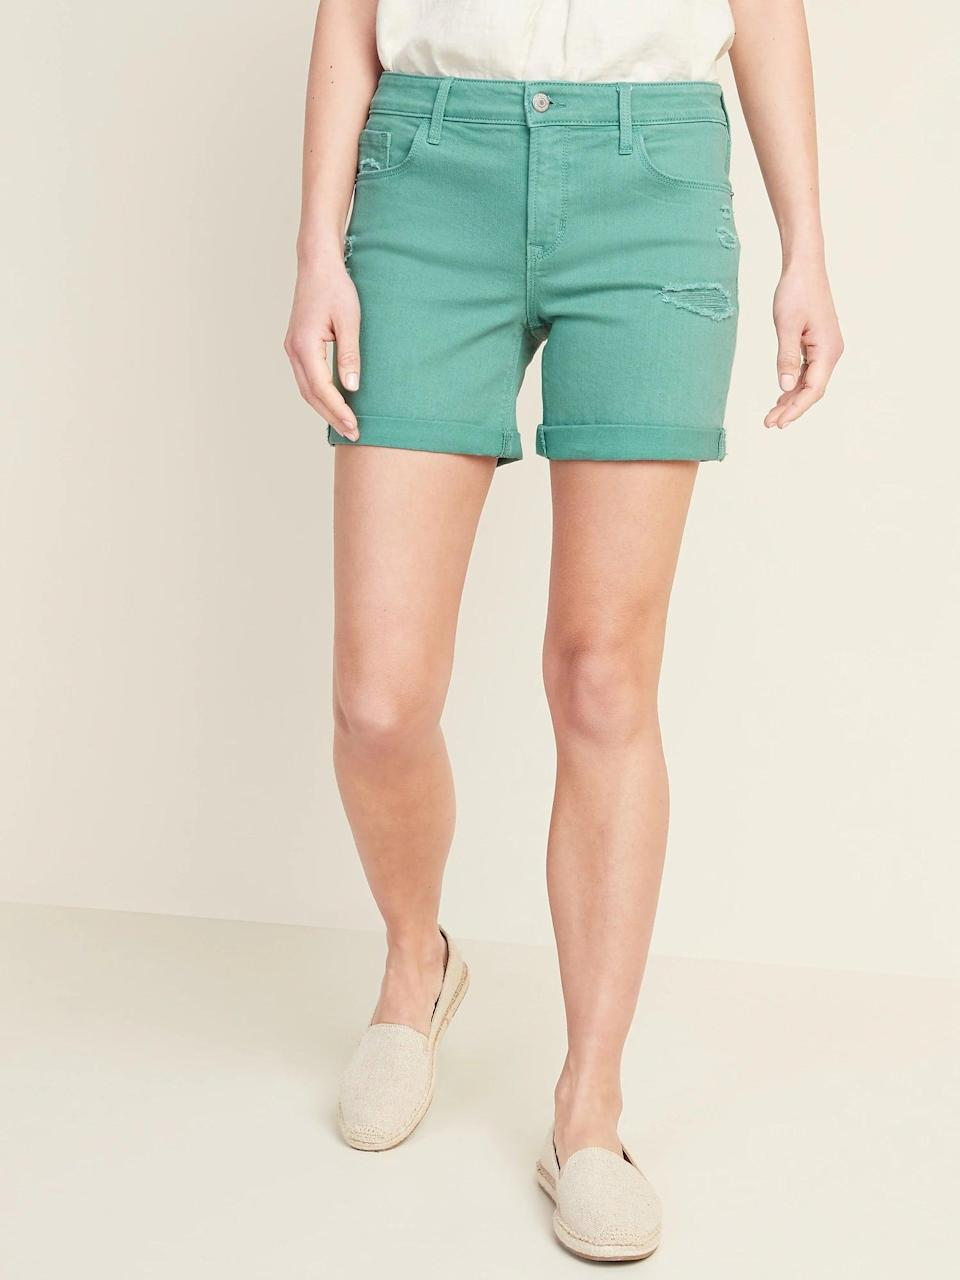 <p>Slip on the cuffed <span>Old Navy Mid-Rise Distressed Green-Color Jean Shorts</span> ($12, originally $30) with a flowy printed top, or tuck in something neutral instead.</p>